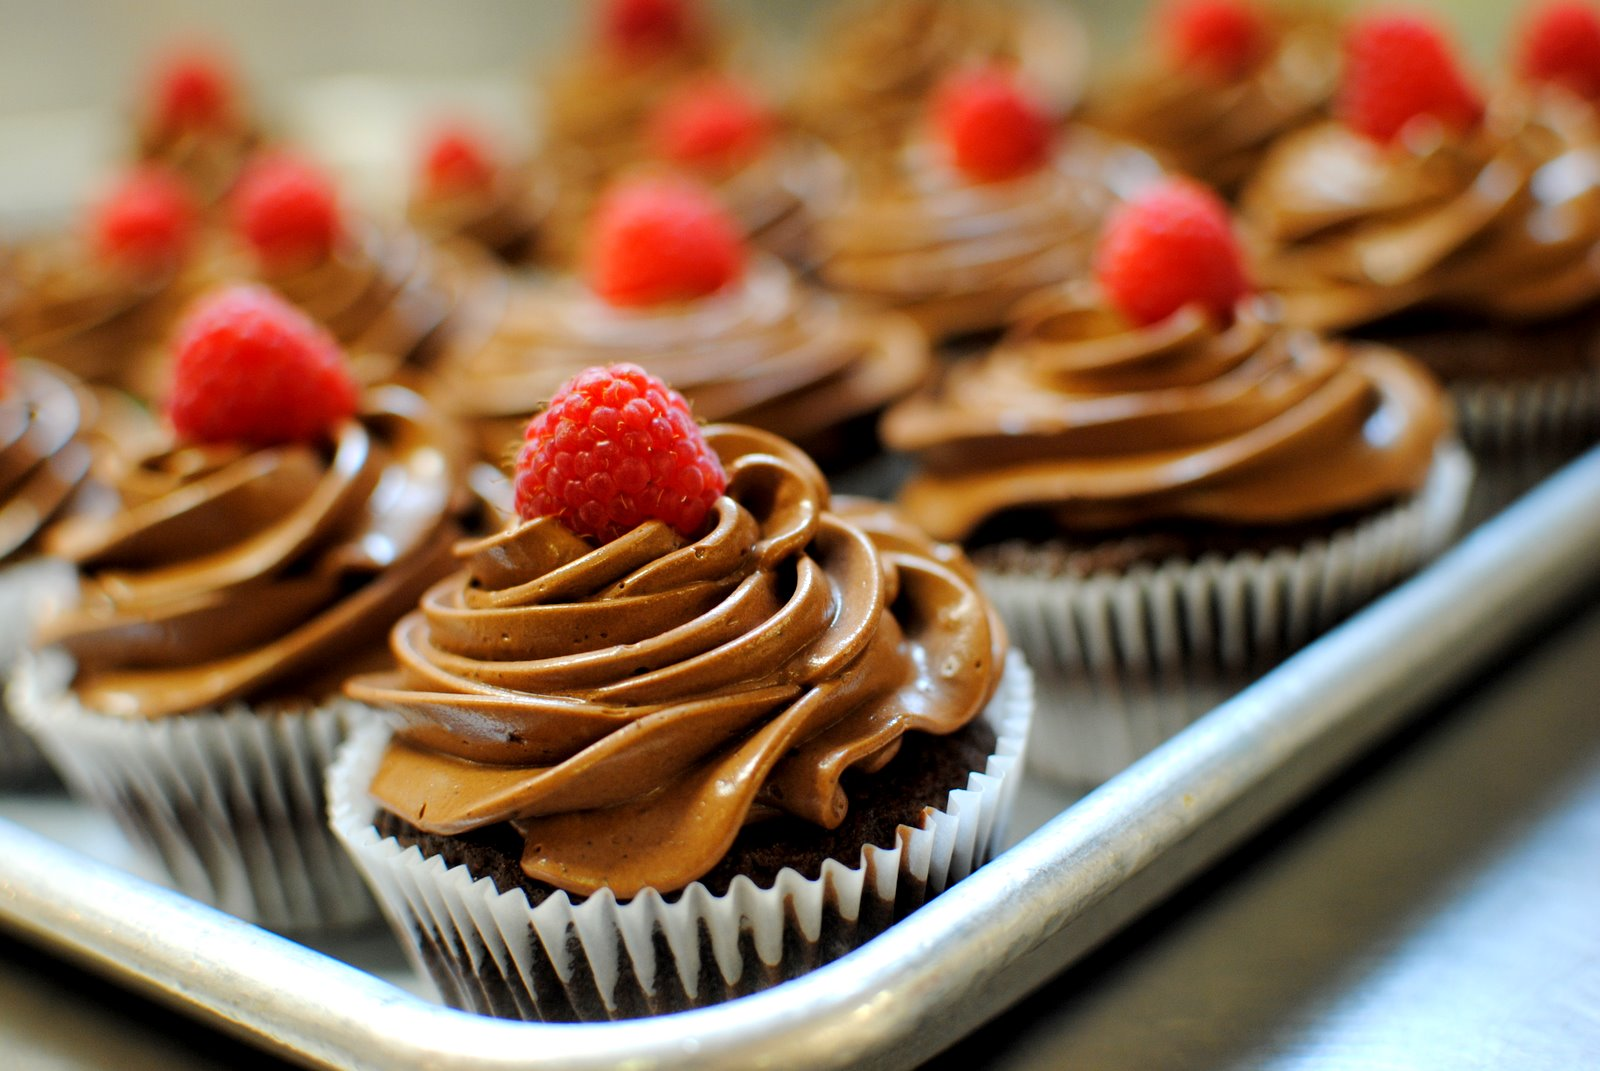 The Church Cook: Chocolate Buttercream Frosting